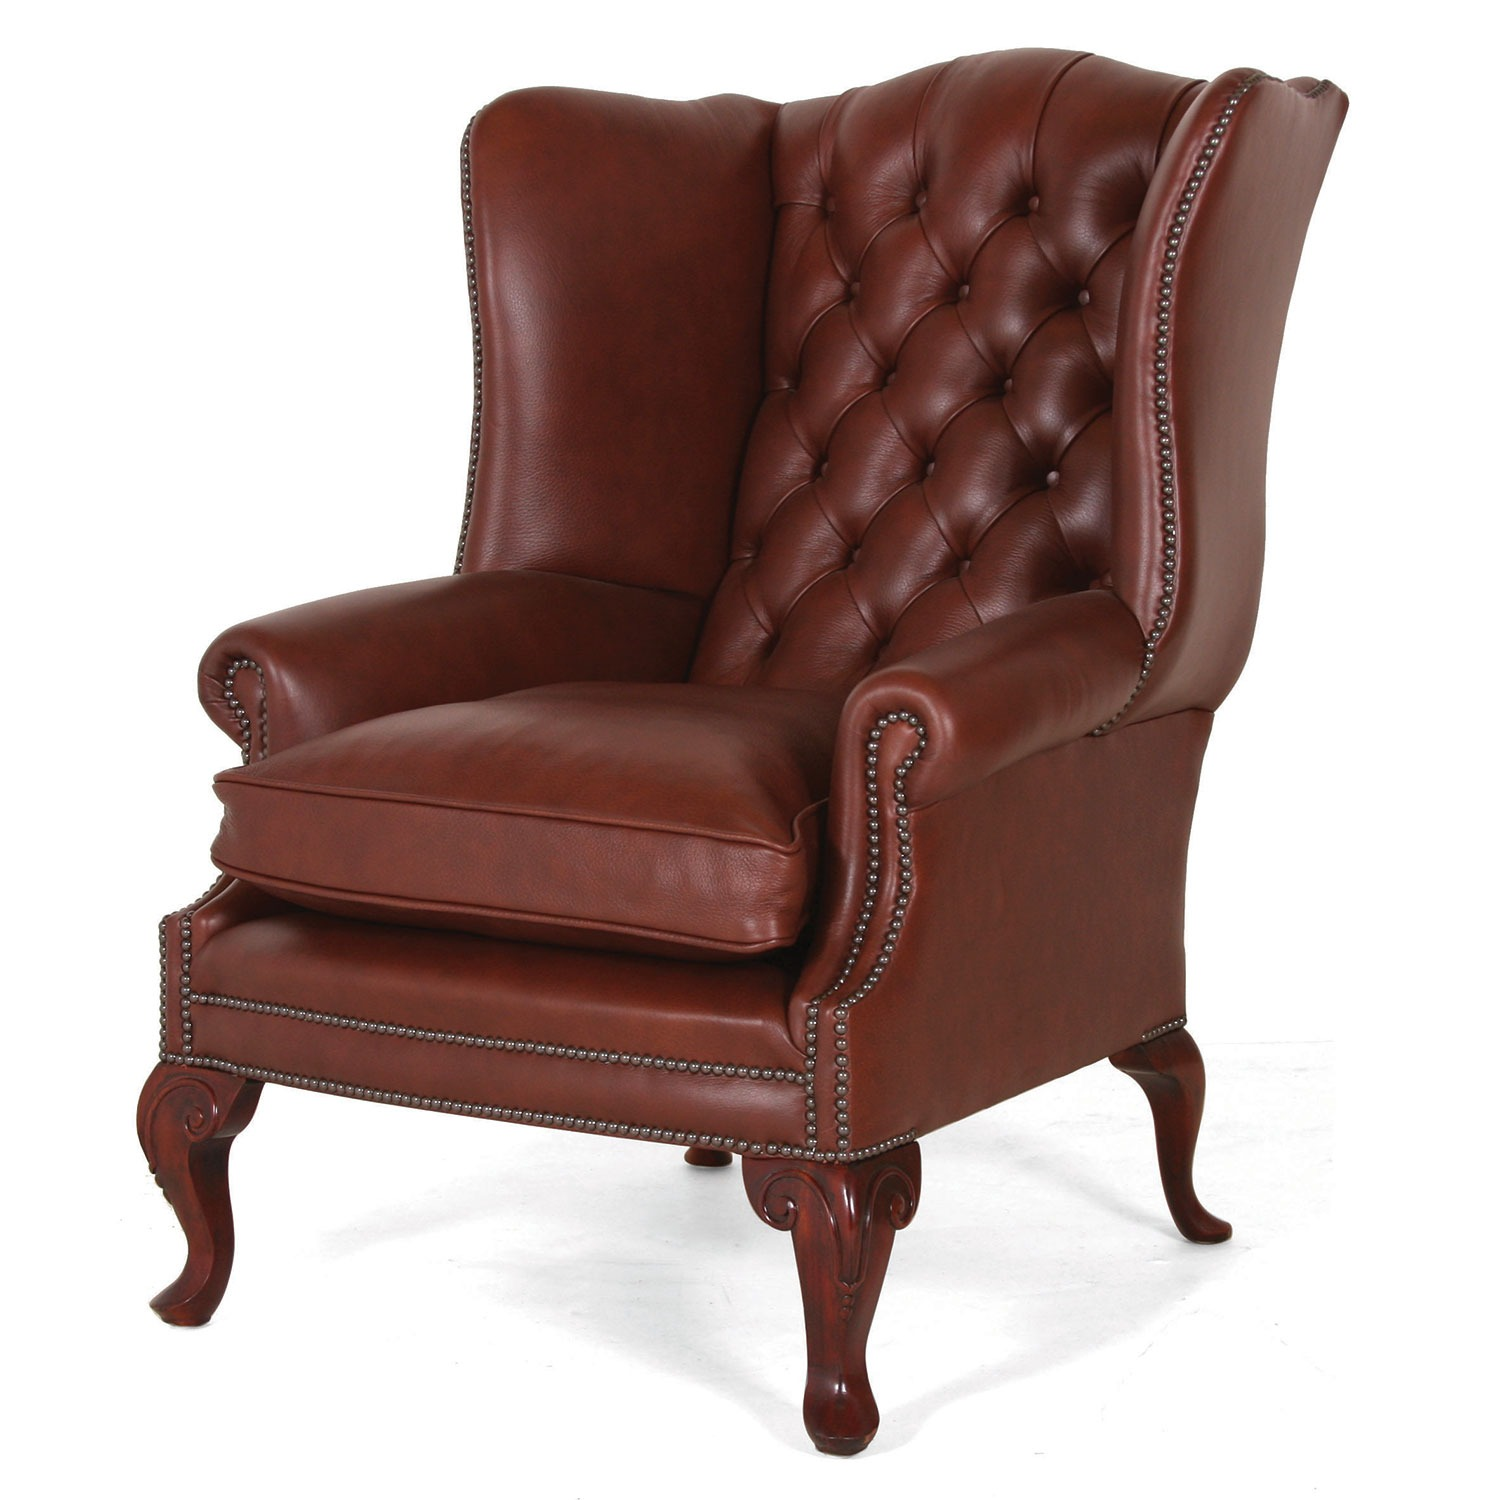 SPECIAL! - Coleridge mahogany leather wing chair on Queen Anne leg